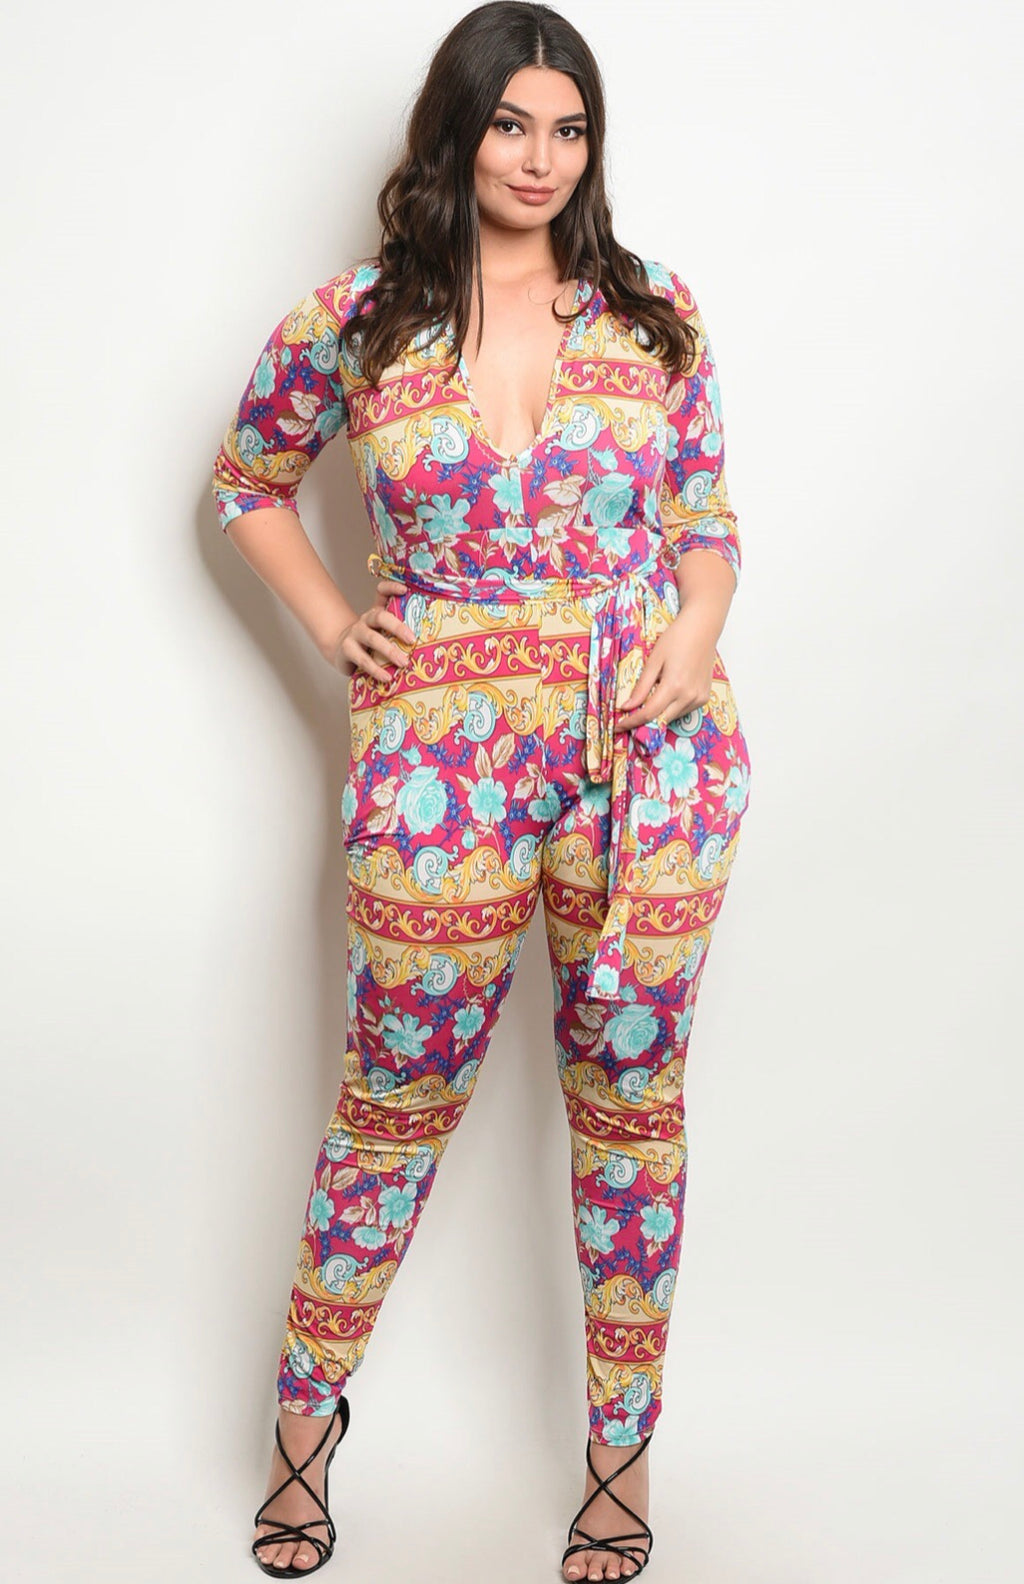 Queen B Jumpsuit